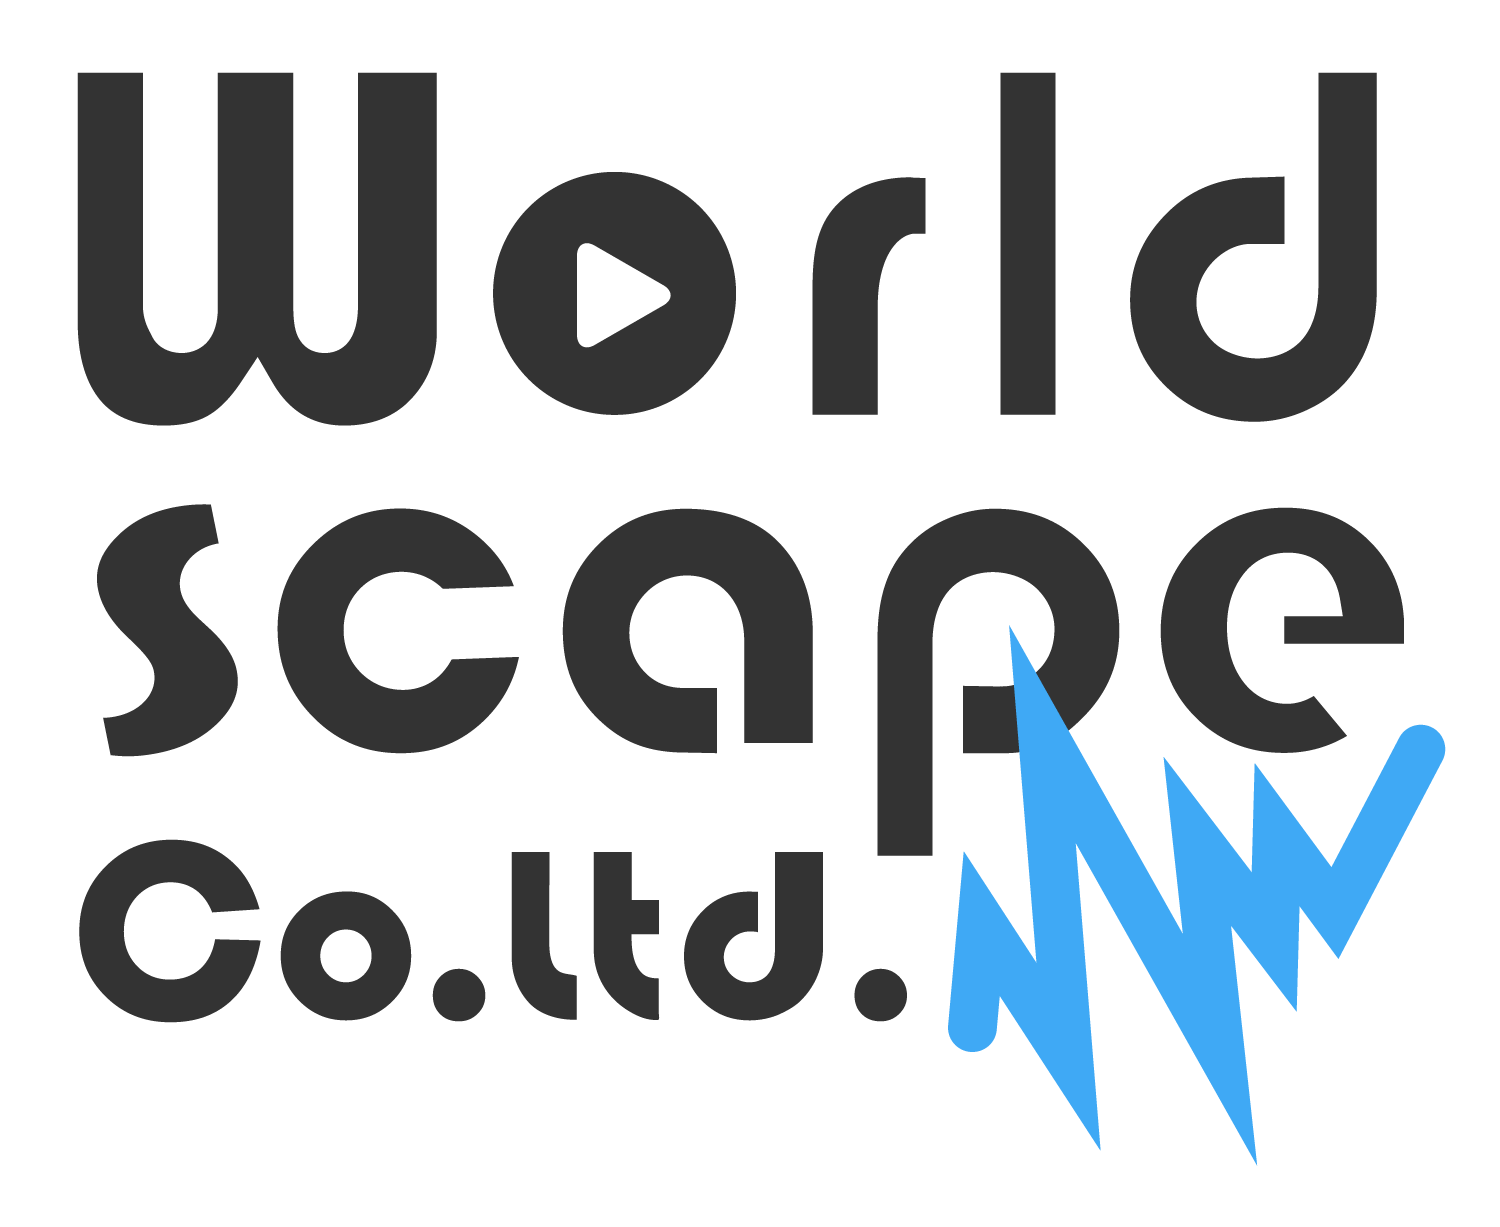 Worldscape Co.Ltd.